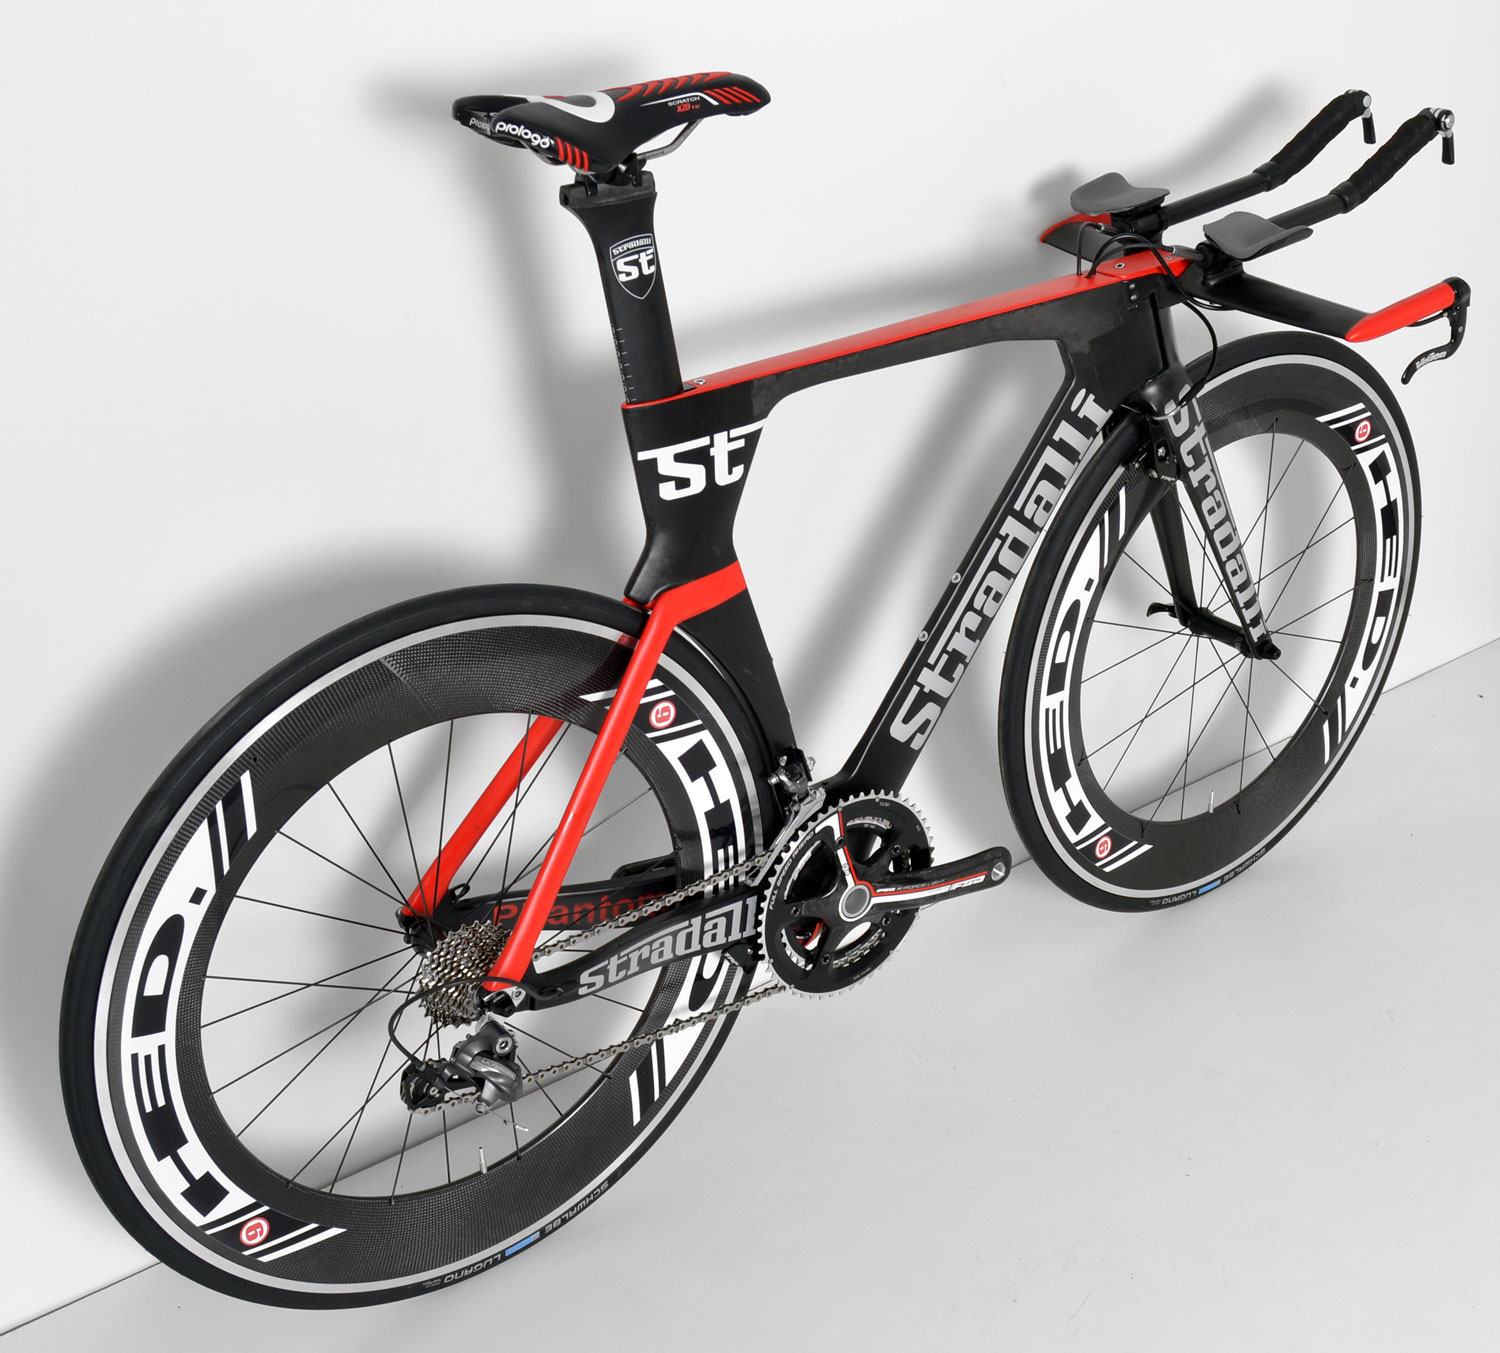 STRADALLI Carbon Fiber Tri Triathlon Time Trial Bike Bicycle Shimano